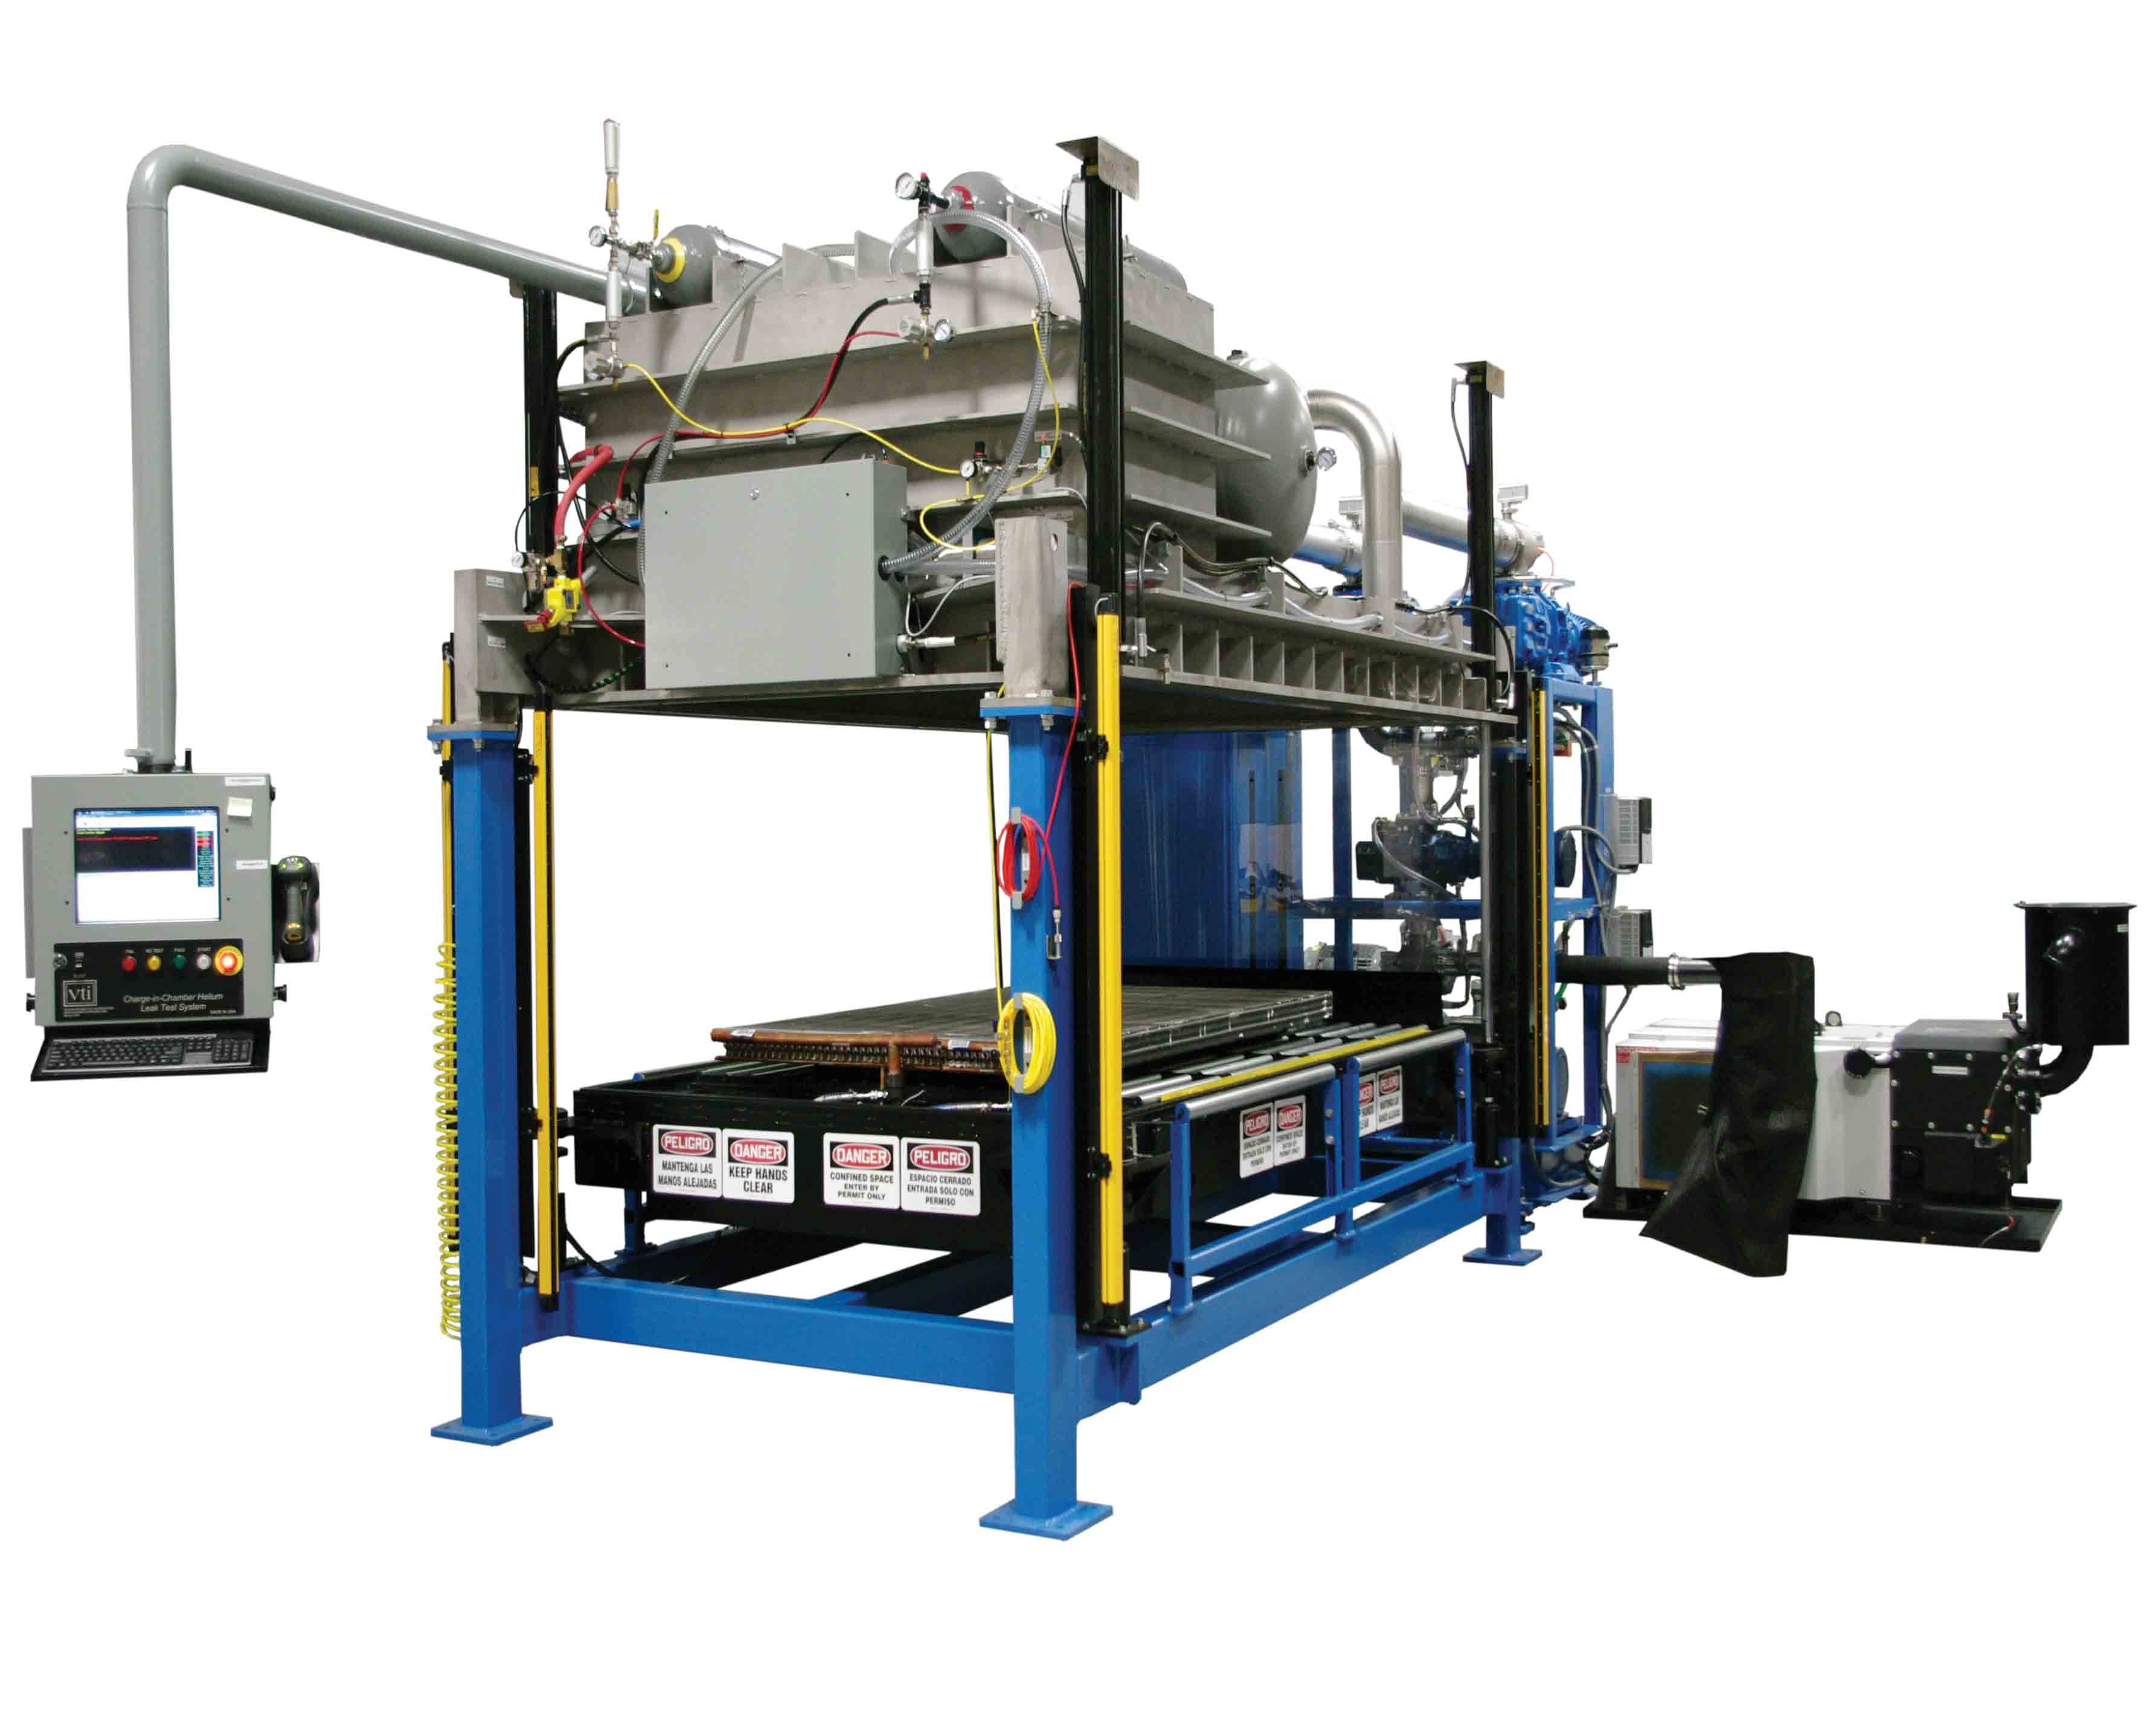 VTI's Large Slab Heat Exchanger Charge-In-Chamber Leak Test System for Slab Coil Manufacturing